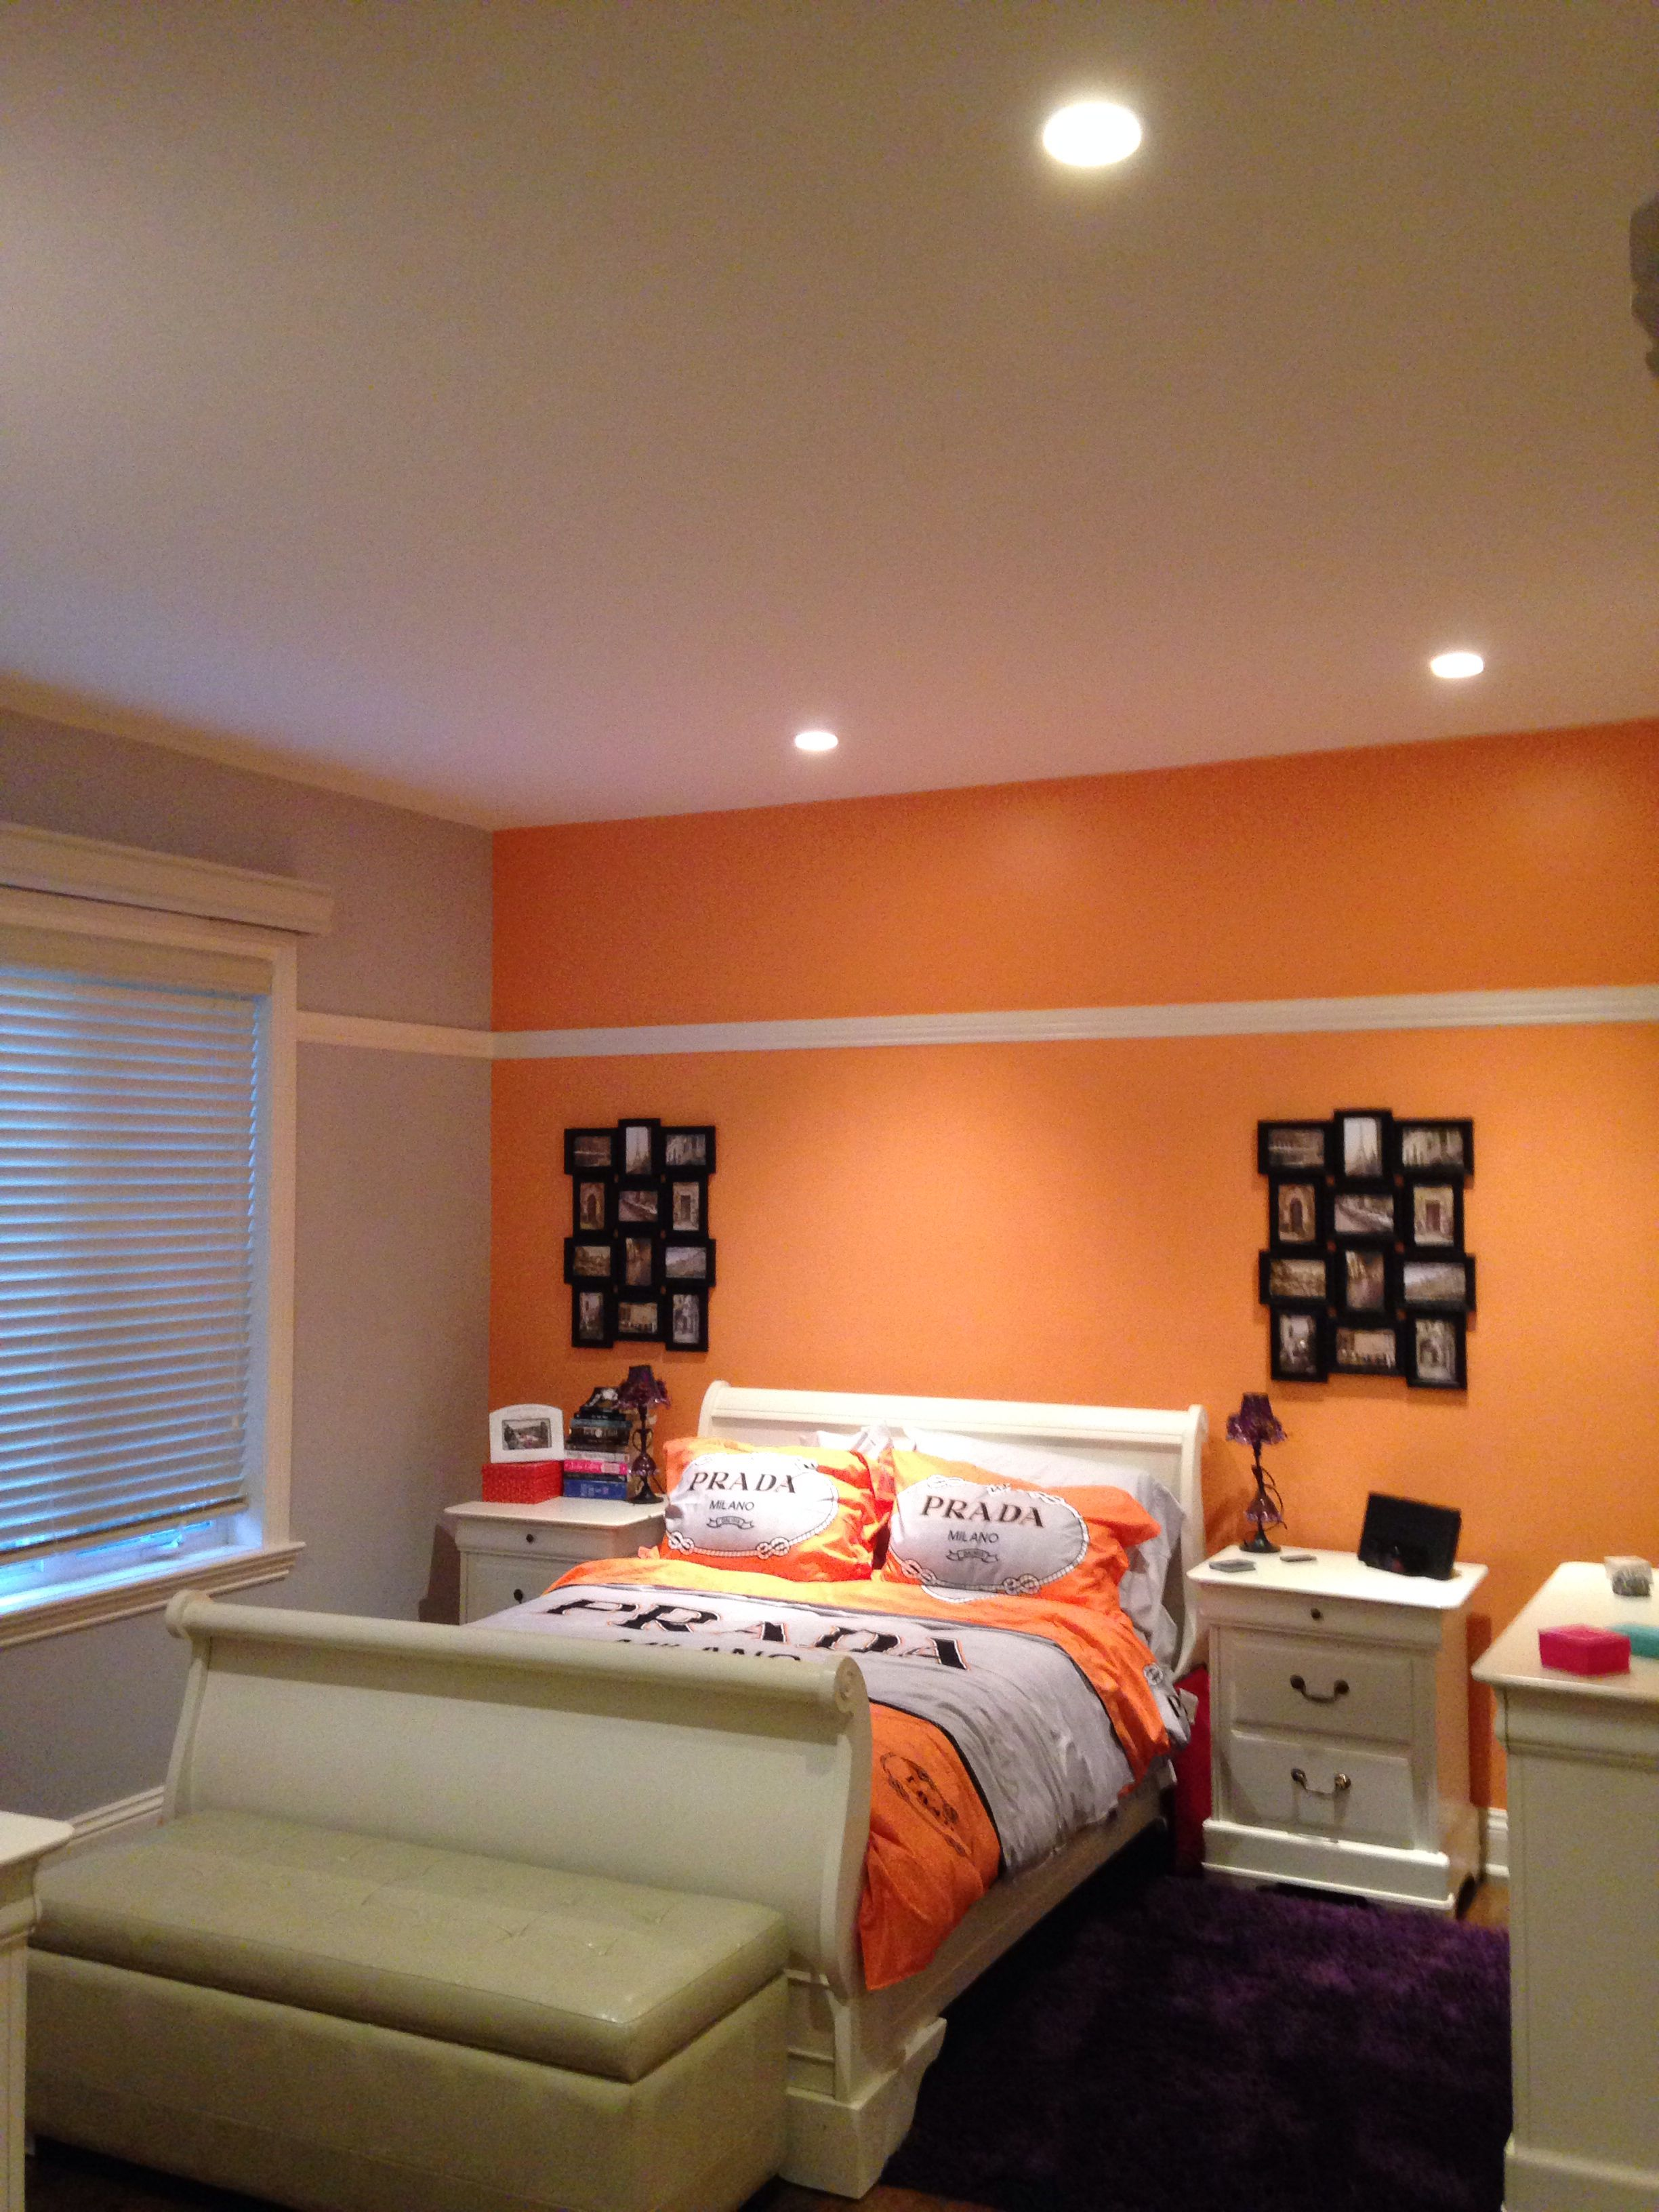 My daughter's bedroom makeover done in 2 days!